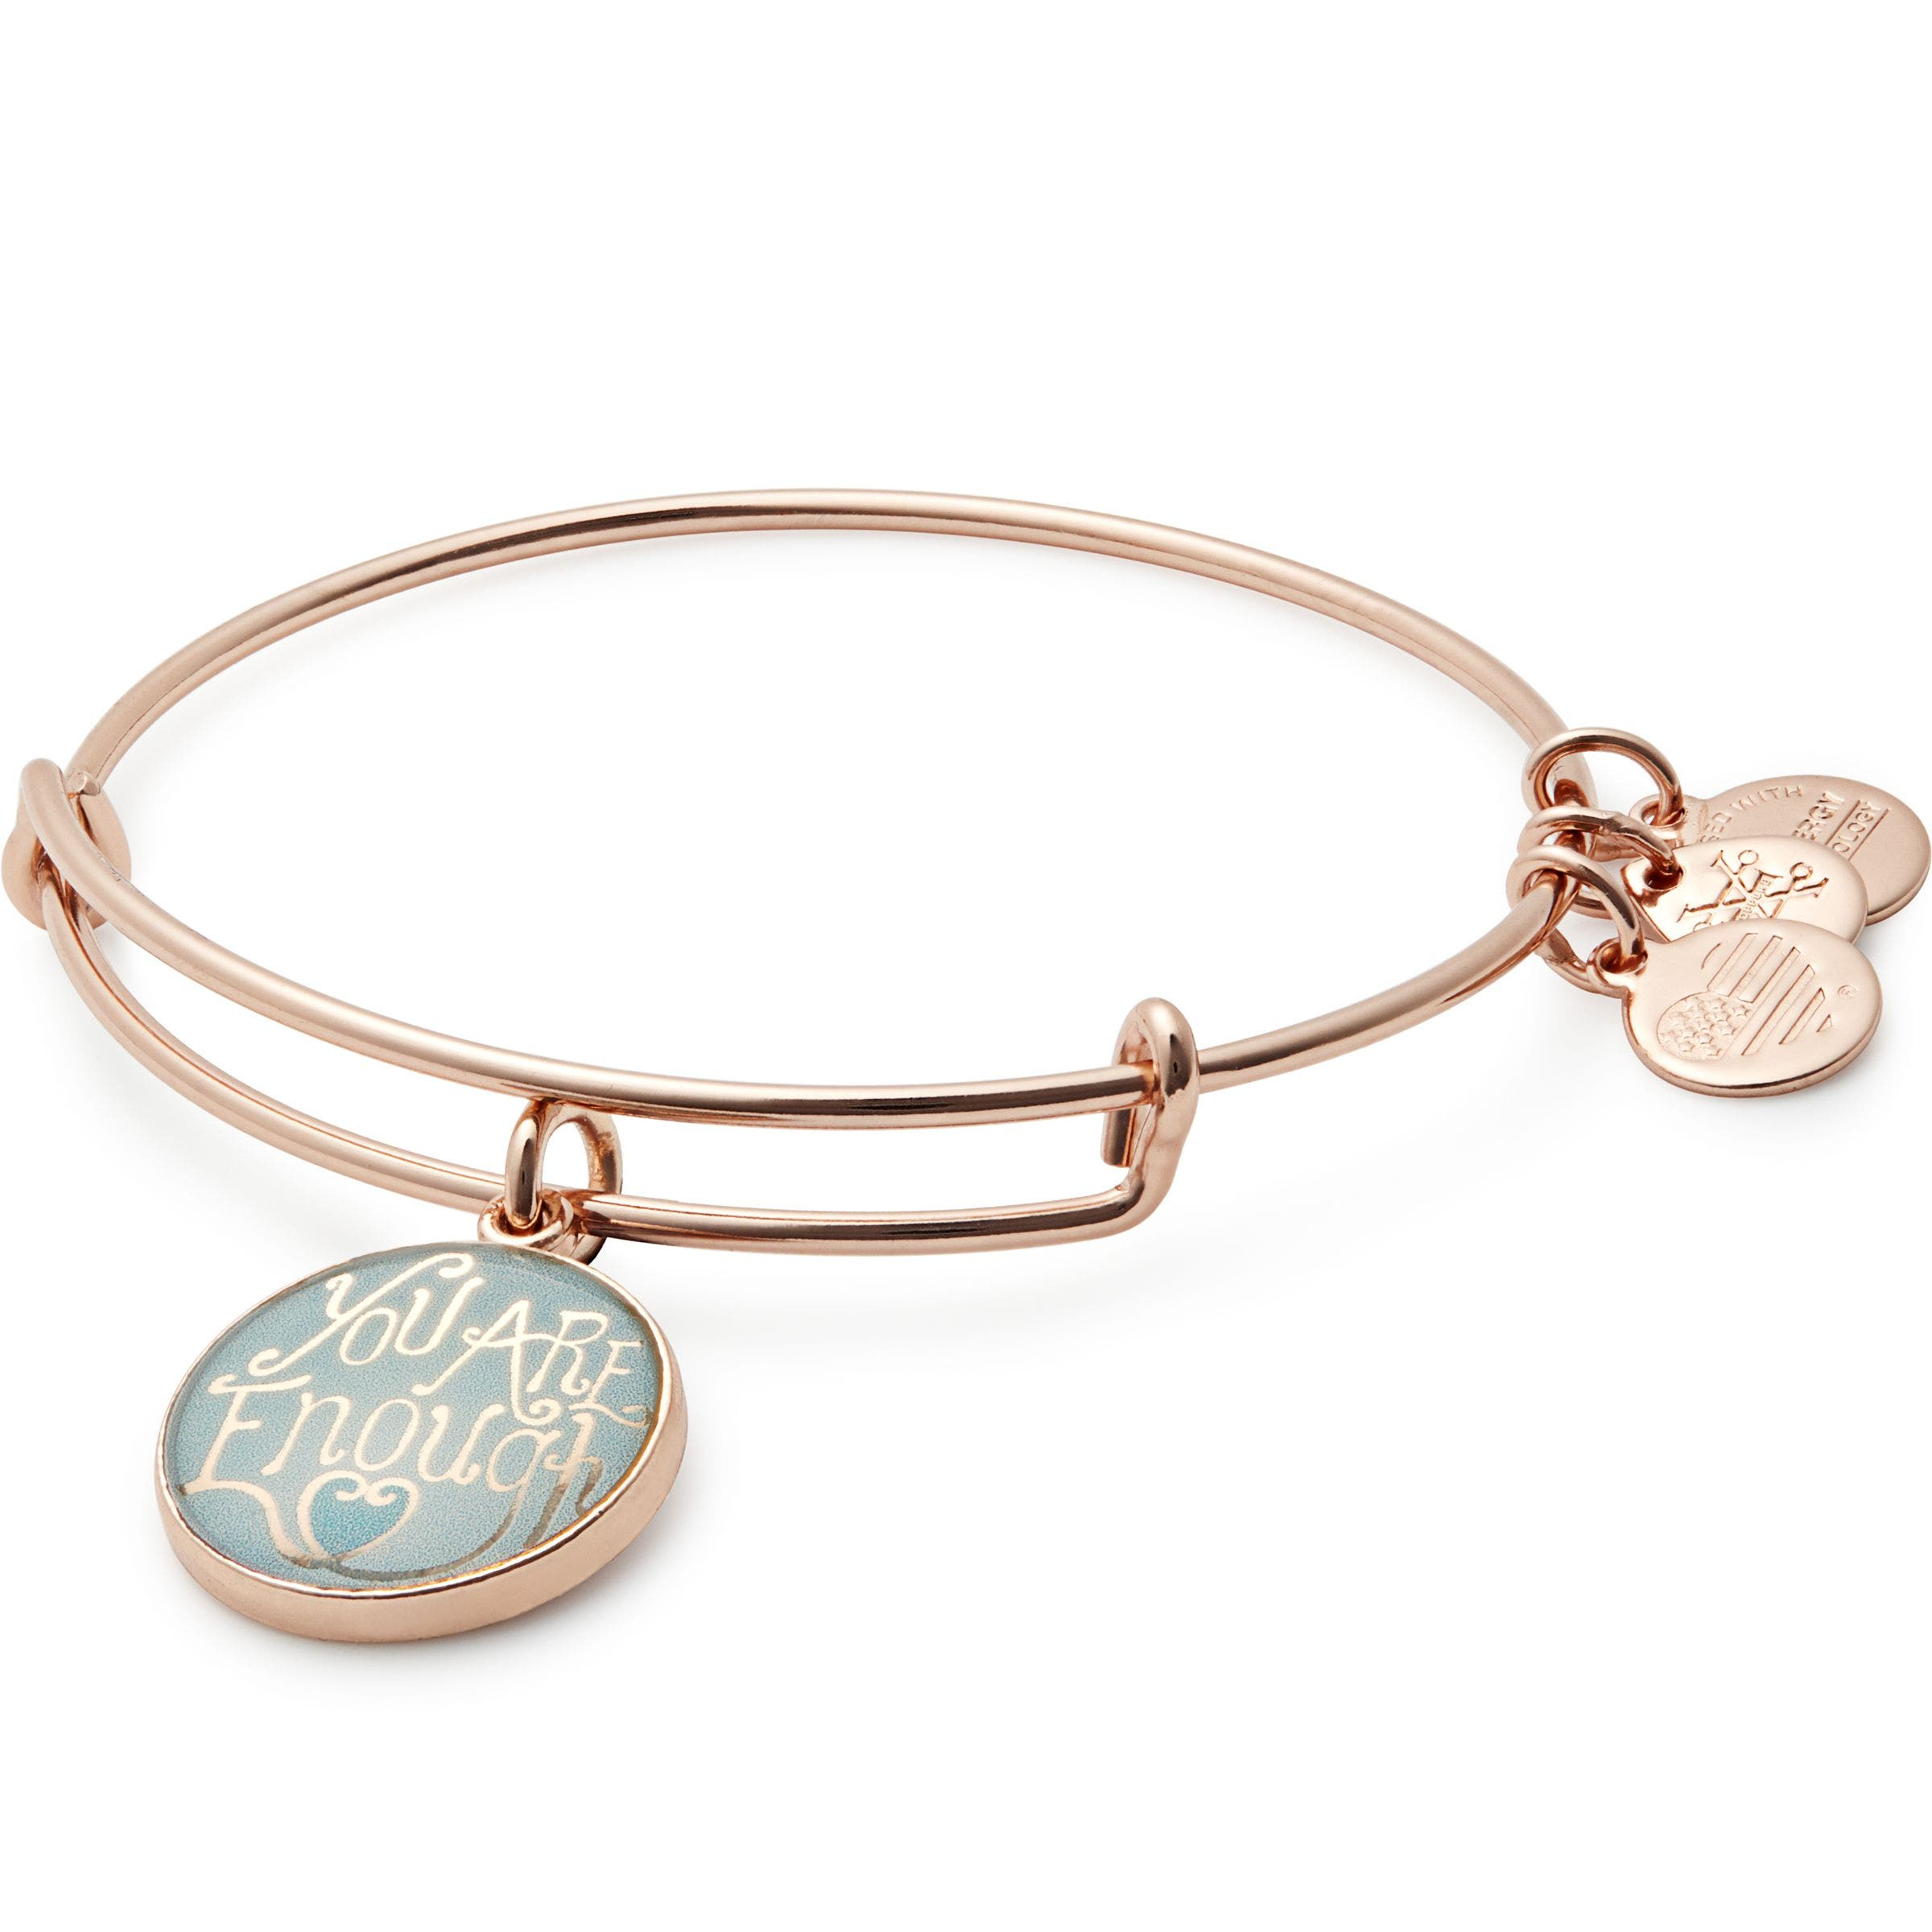 ALEX AND ANI You Are Enough Expandable Bangle, Main, color, 650